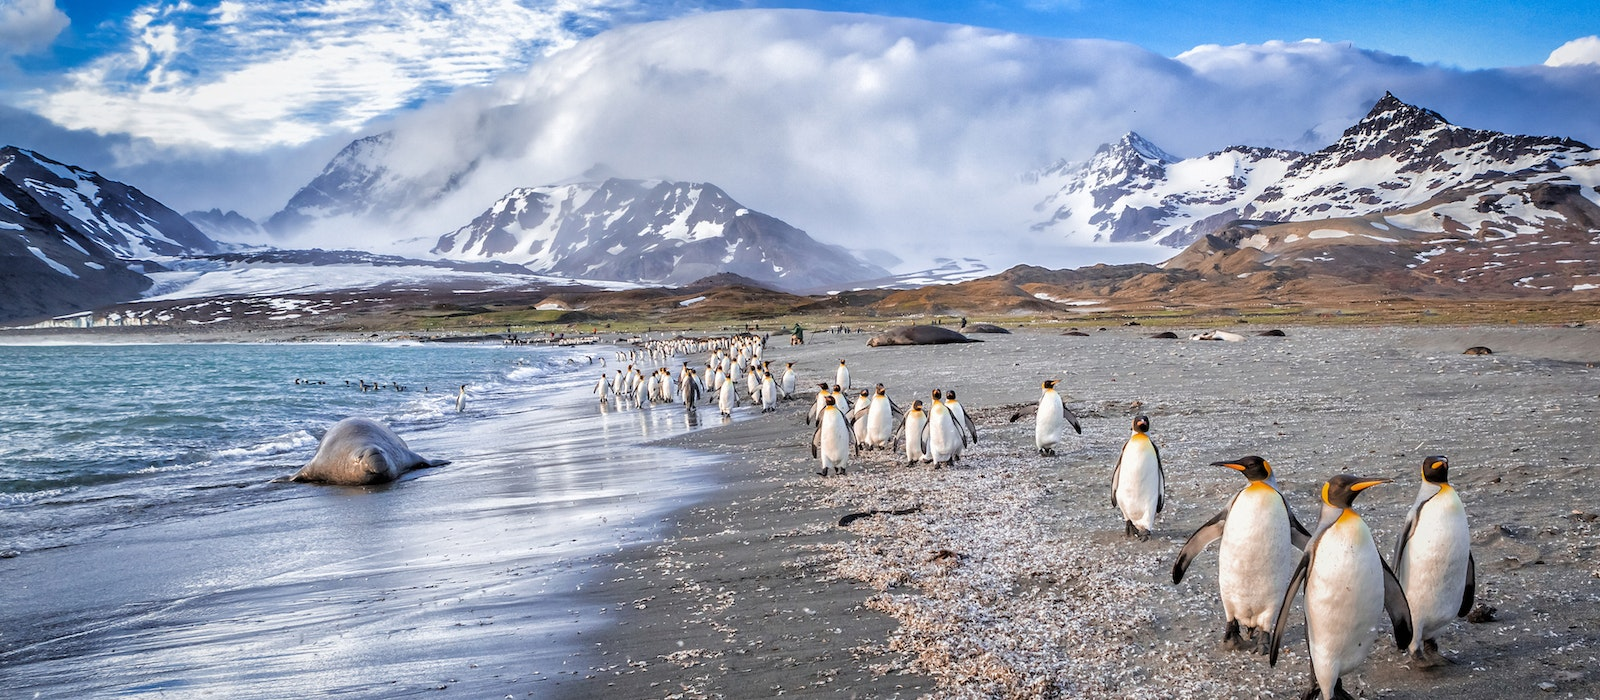 King penguins form colonies in South Georgia, an island in the Antarctic region south of the Falkland Islands.